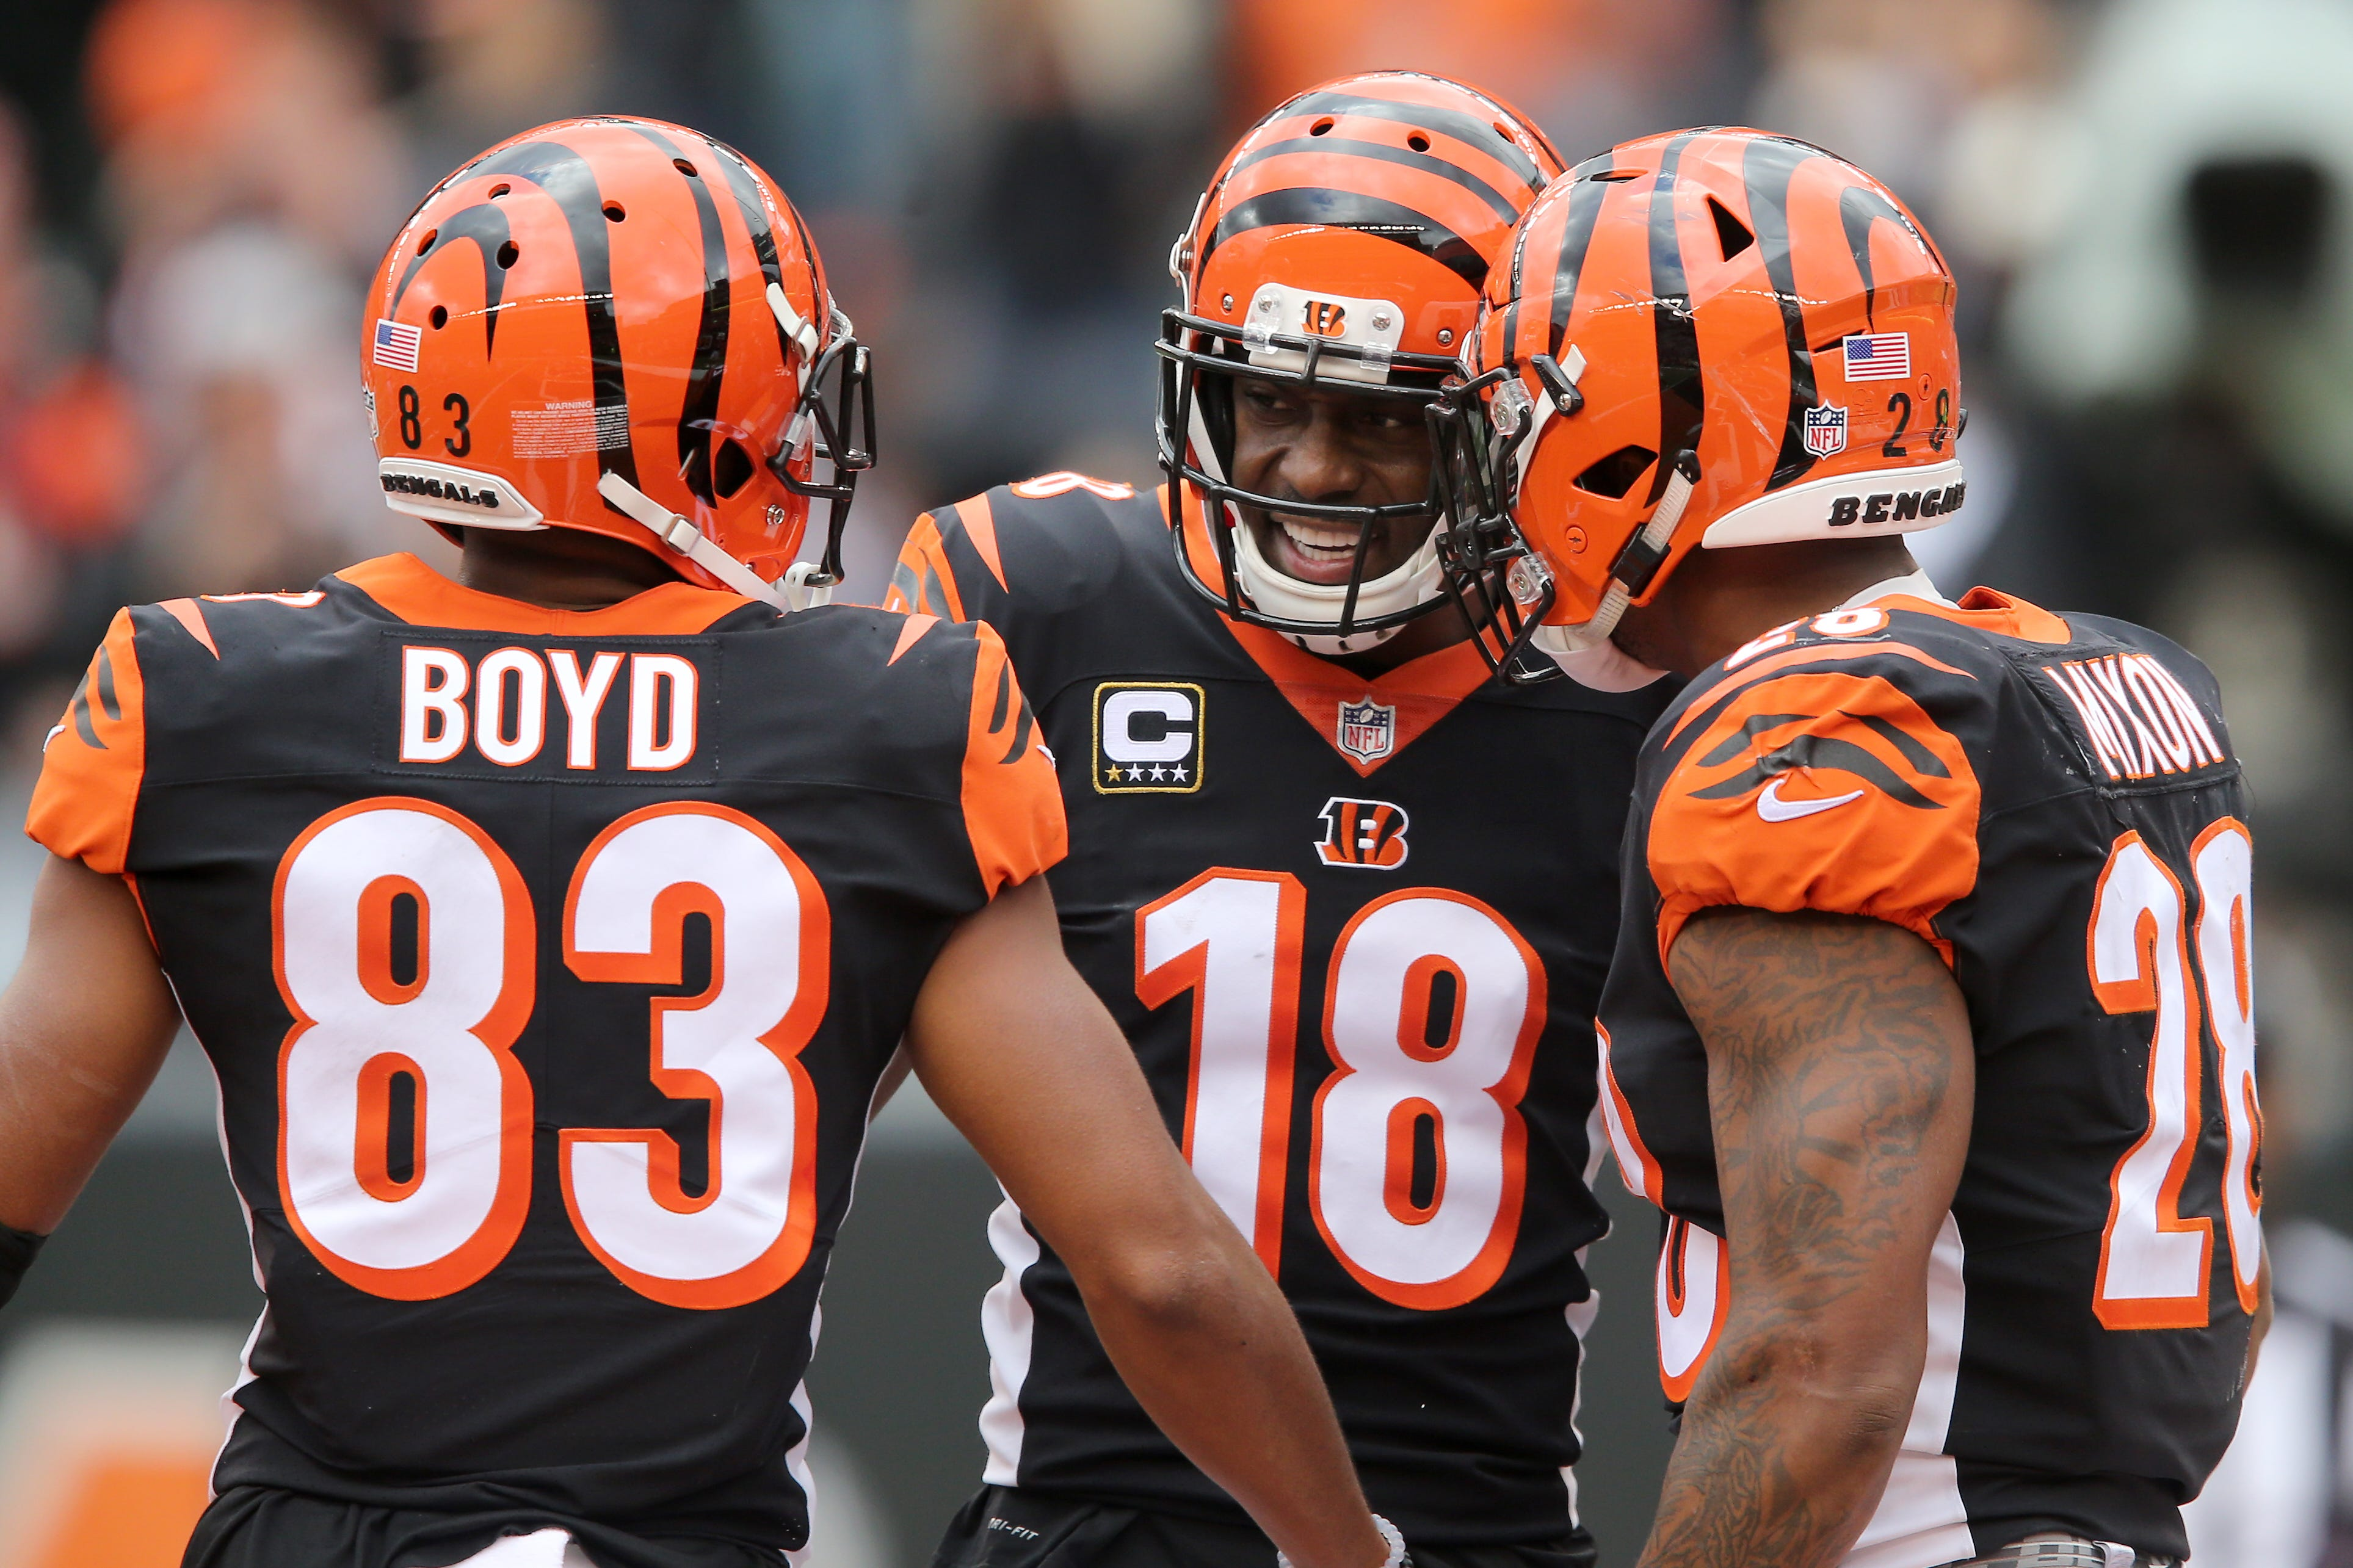 Bengals WR A.J. Green: I have four great years left in me